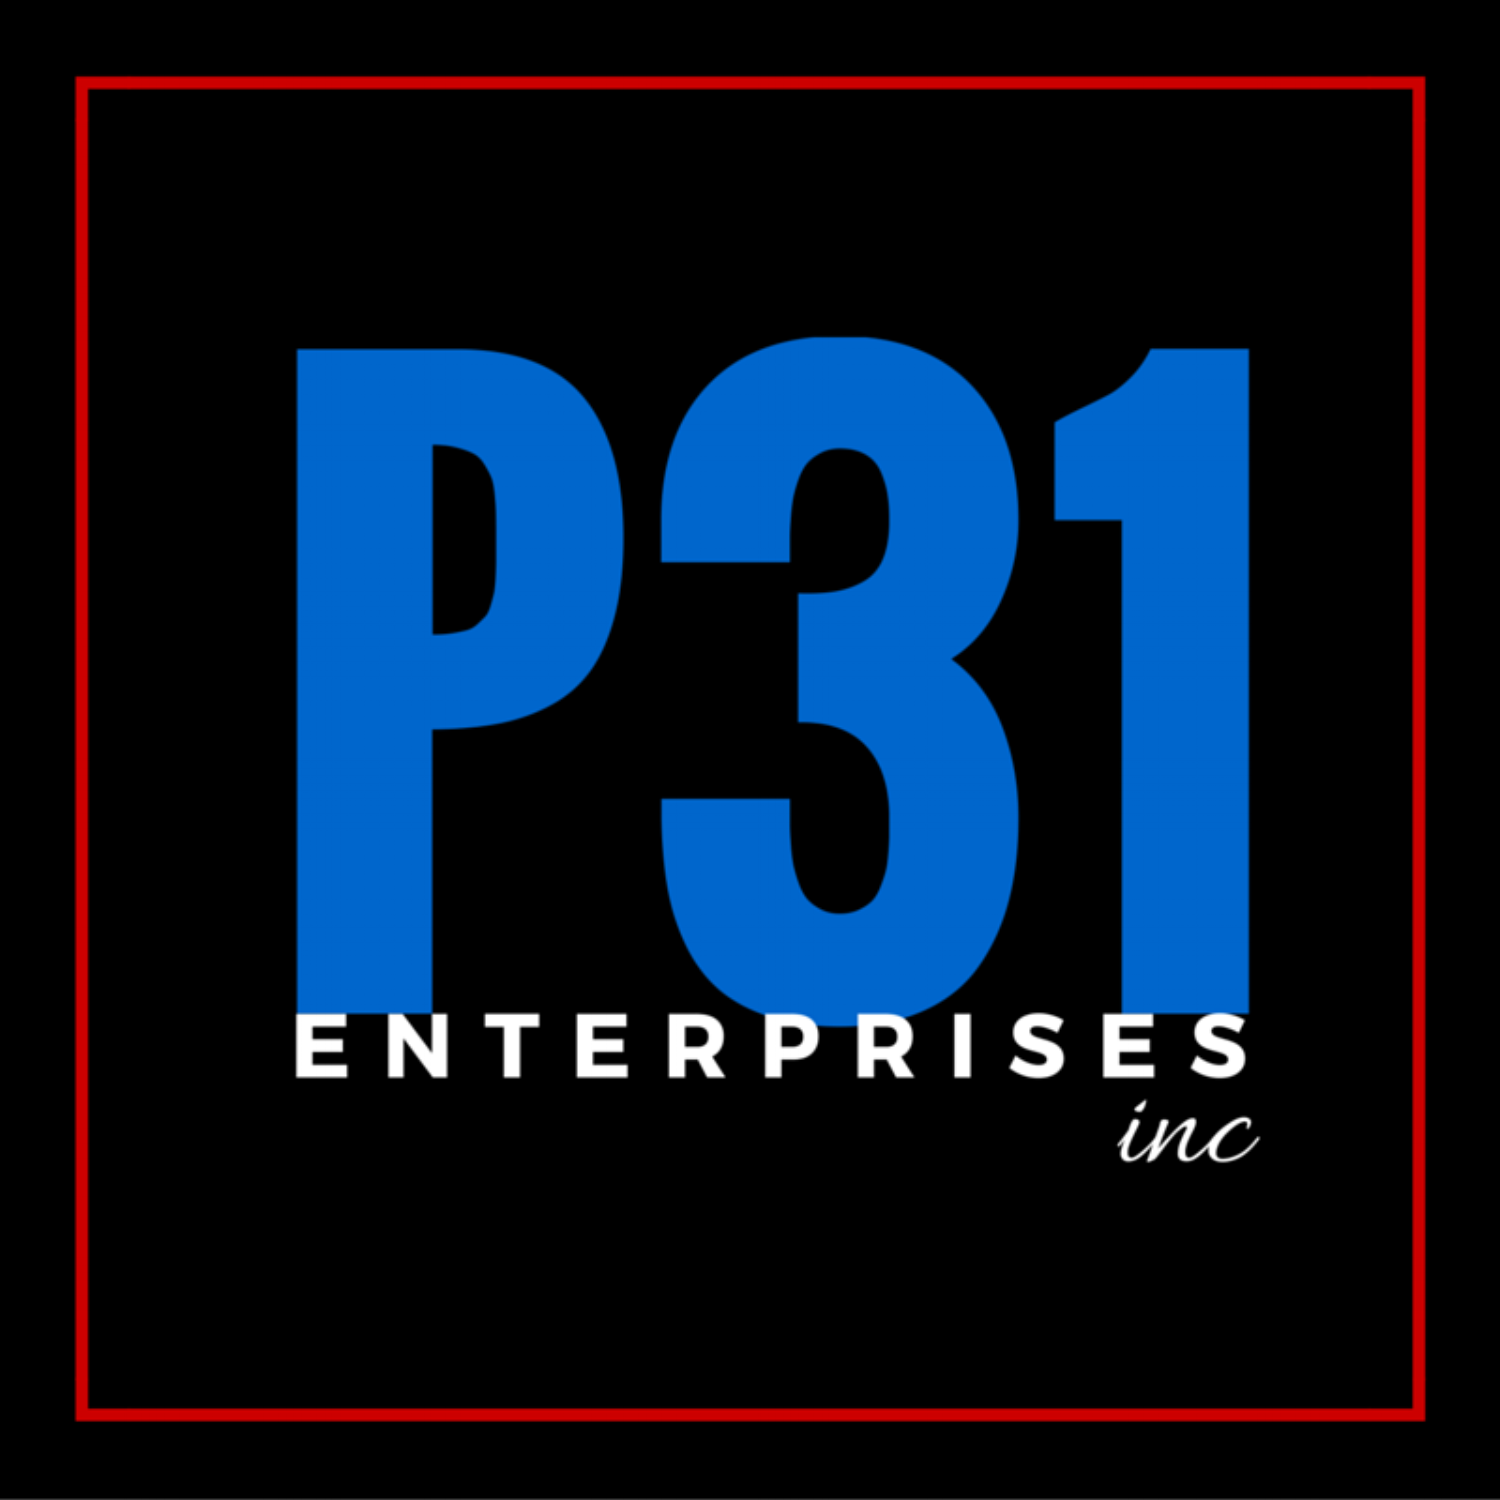 P31 Enterprises, Inc.